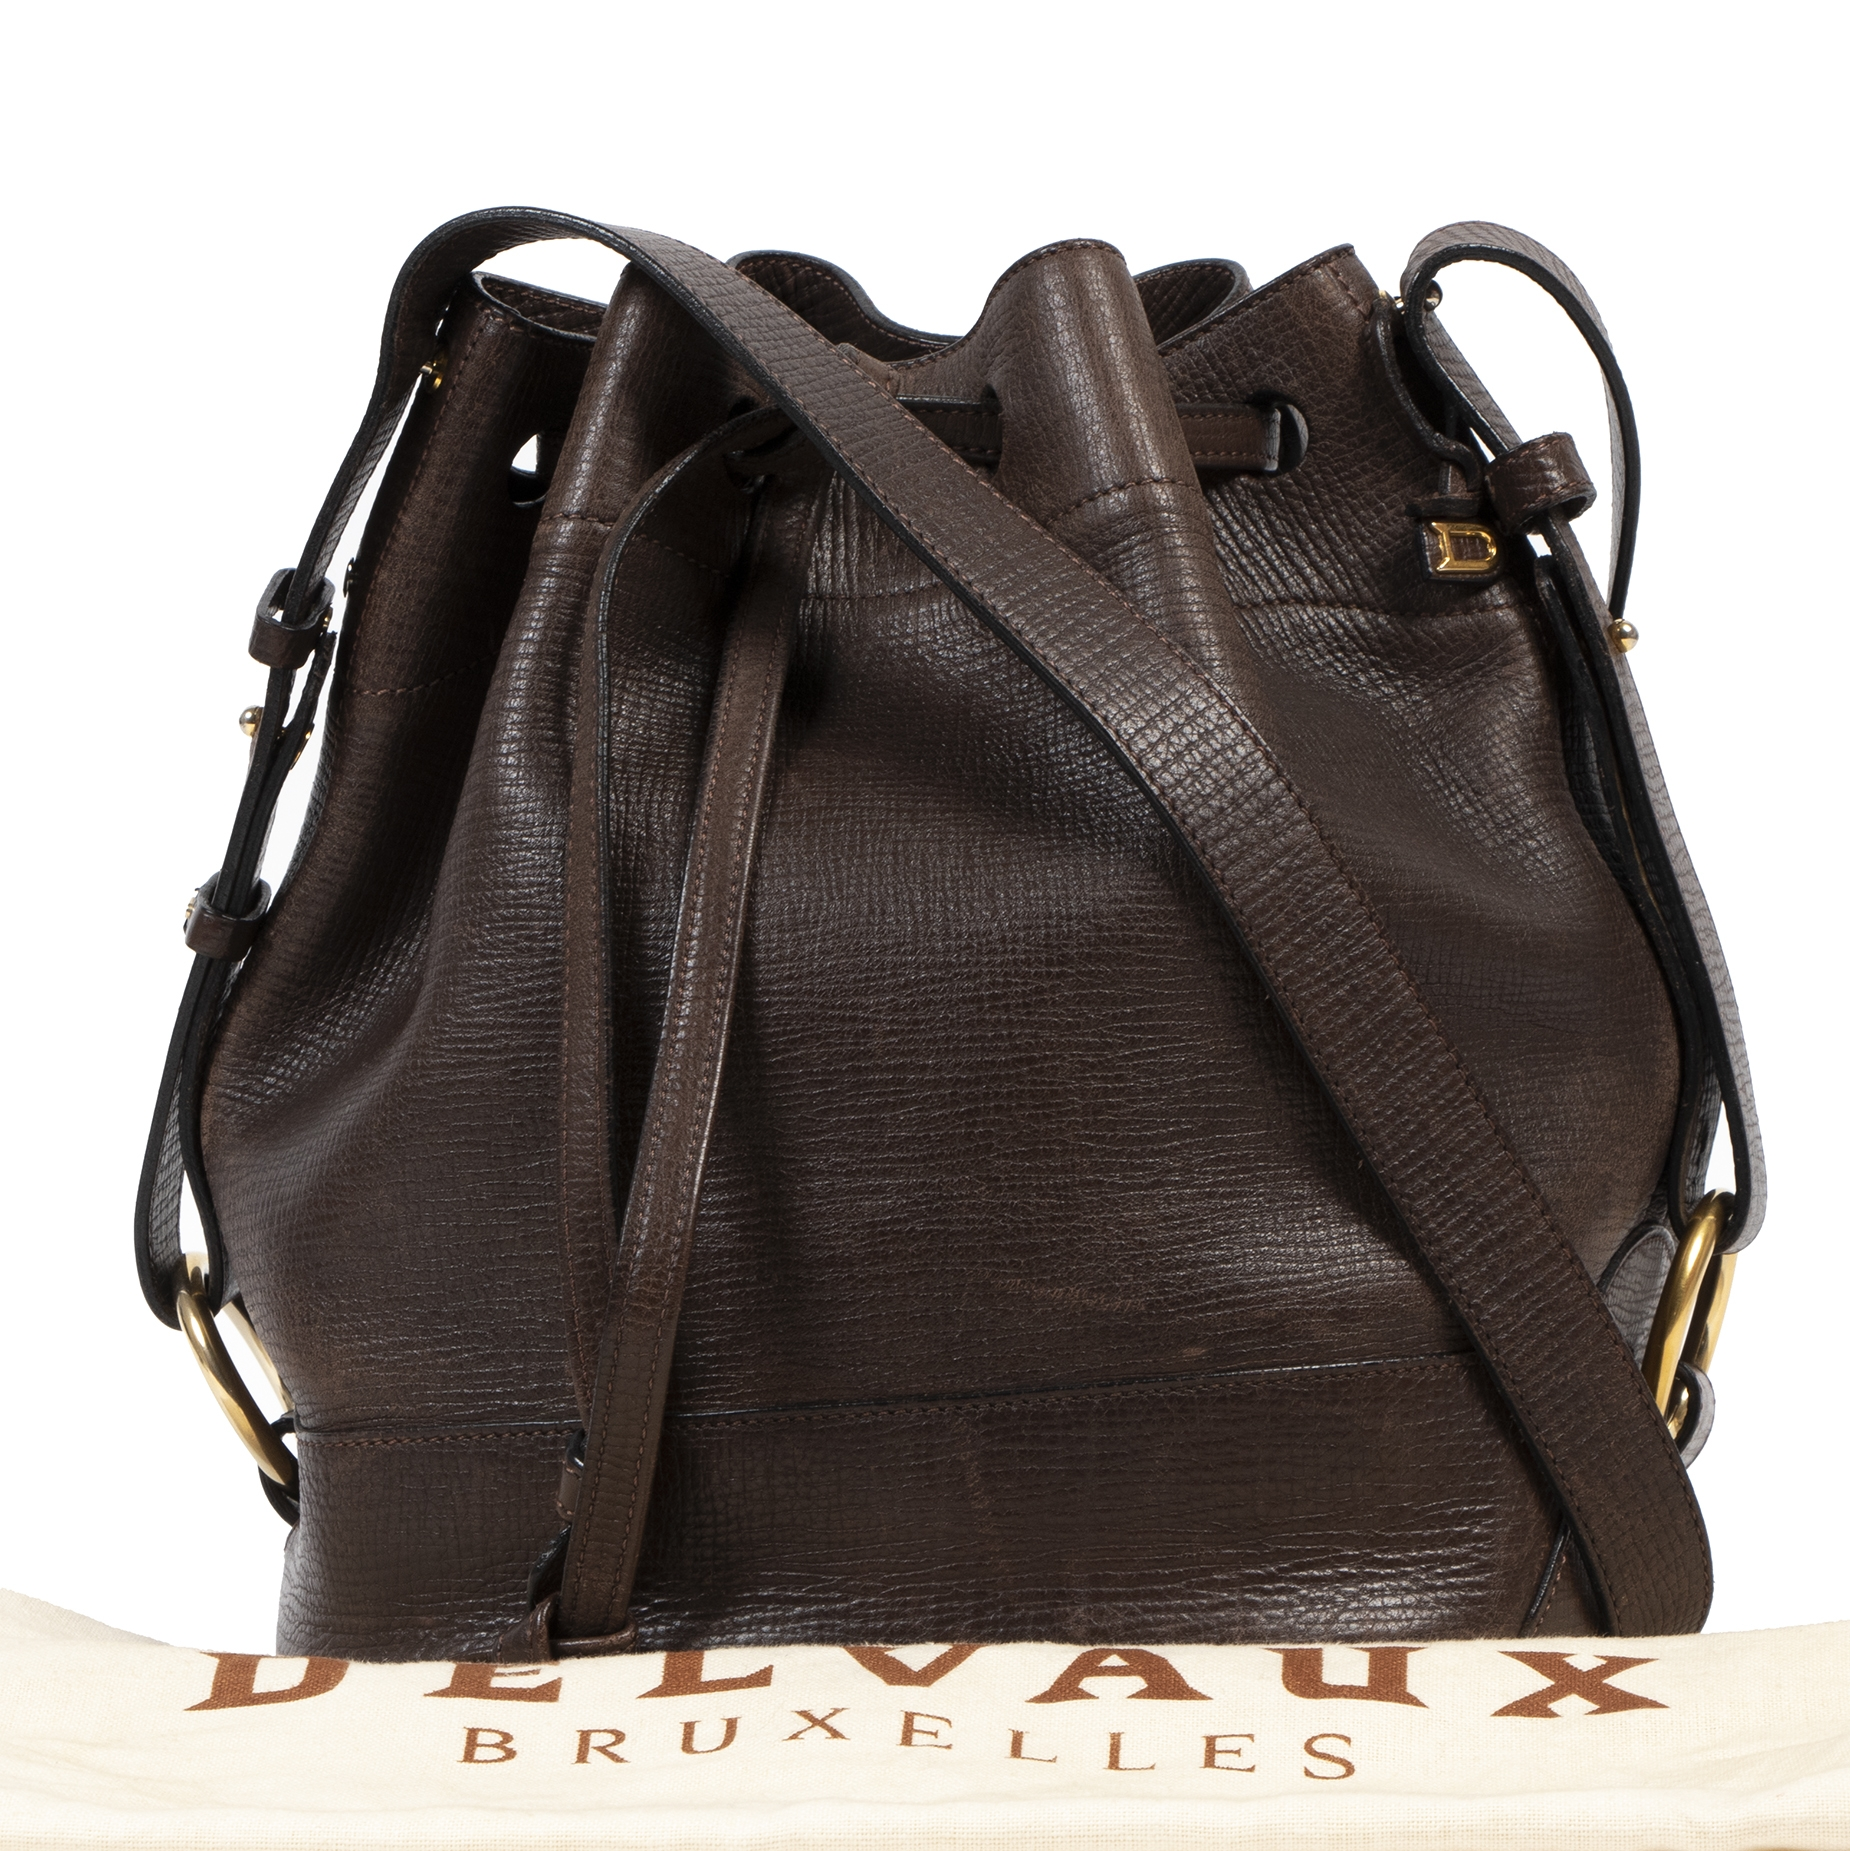 Authentique seconde-main vintage Delvaux Brown Leather Bucket Bag achète en ligne webshop LabelLOV